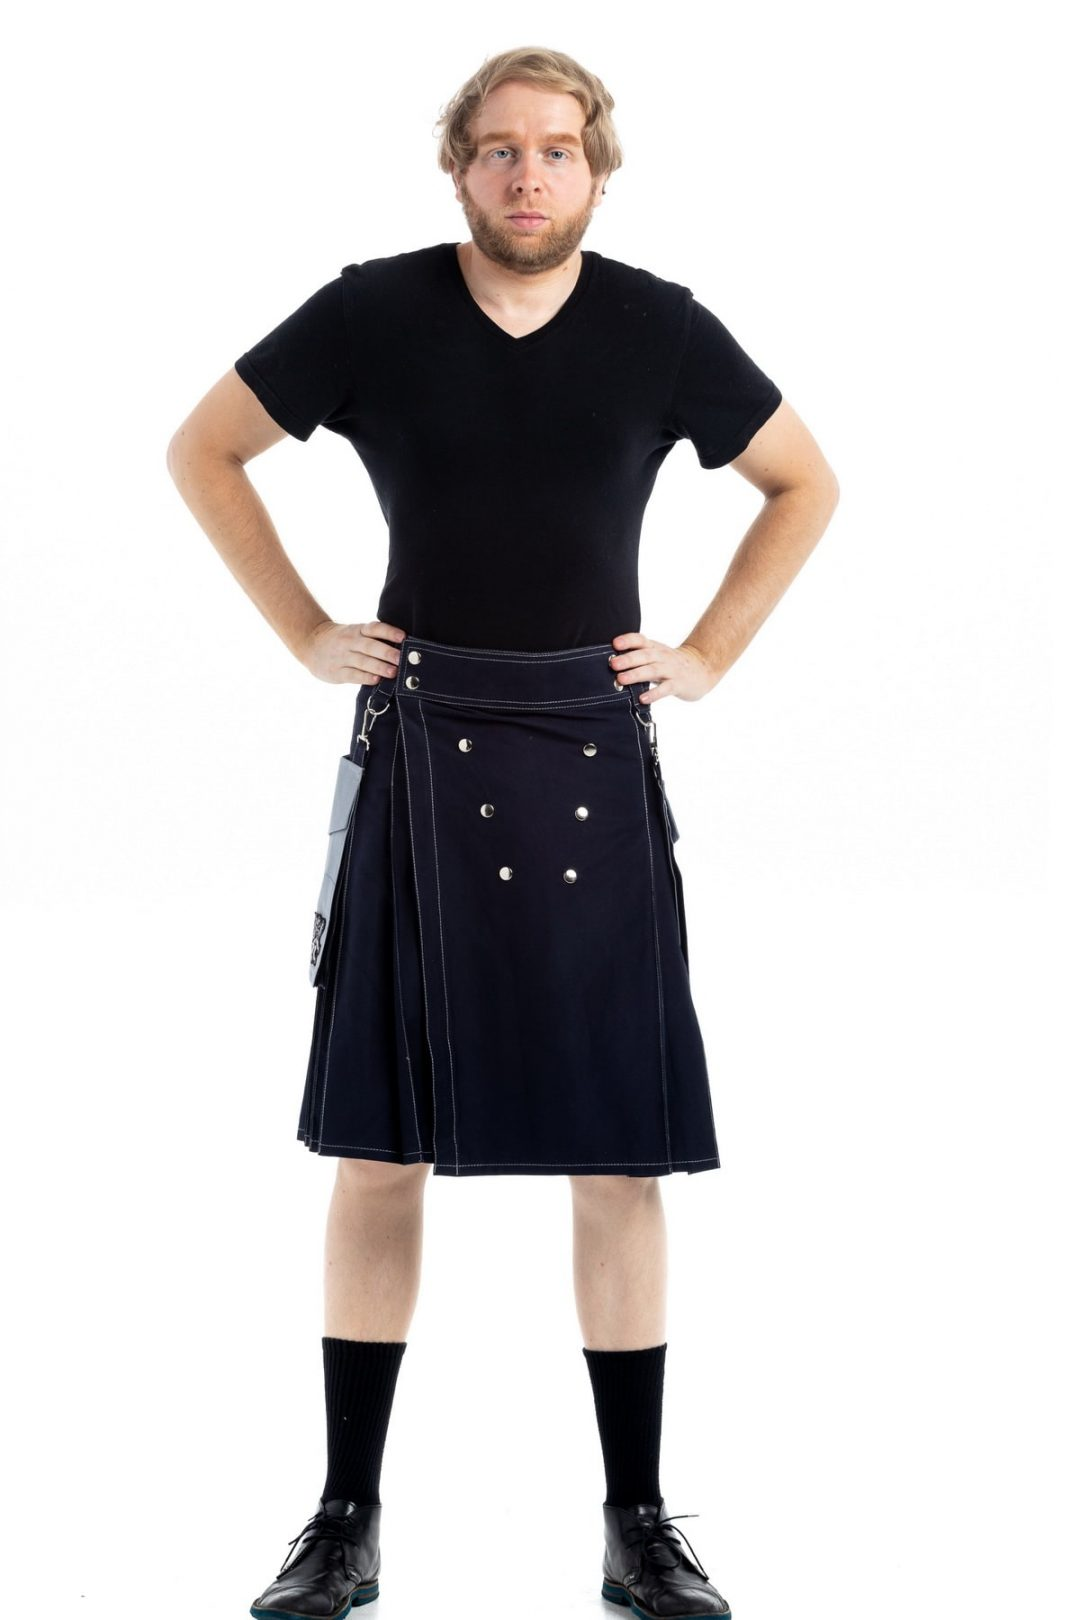 Contrast Pocket Modern Kilt For Royal Men